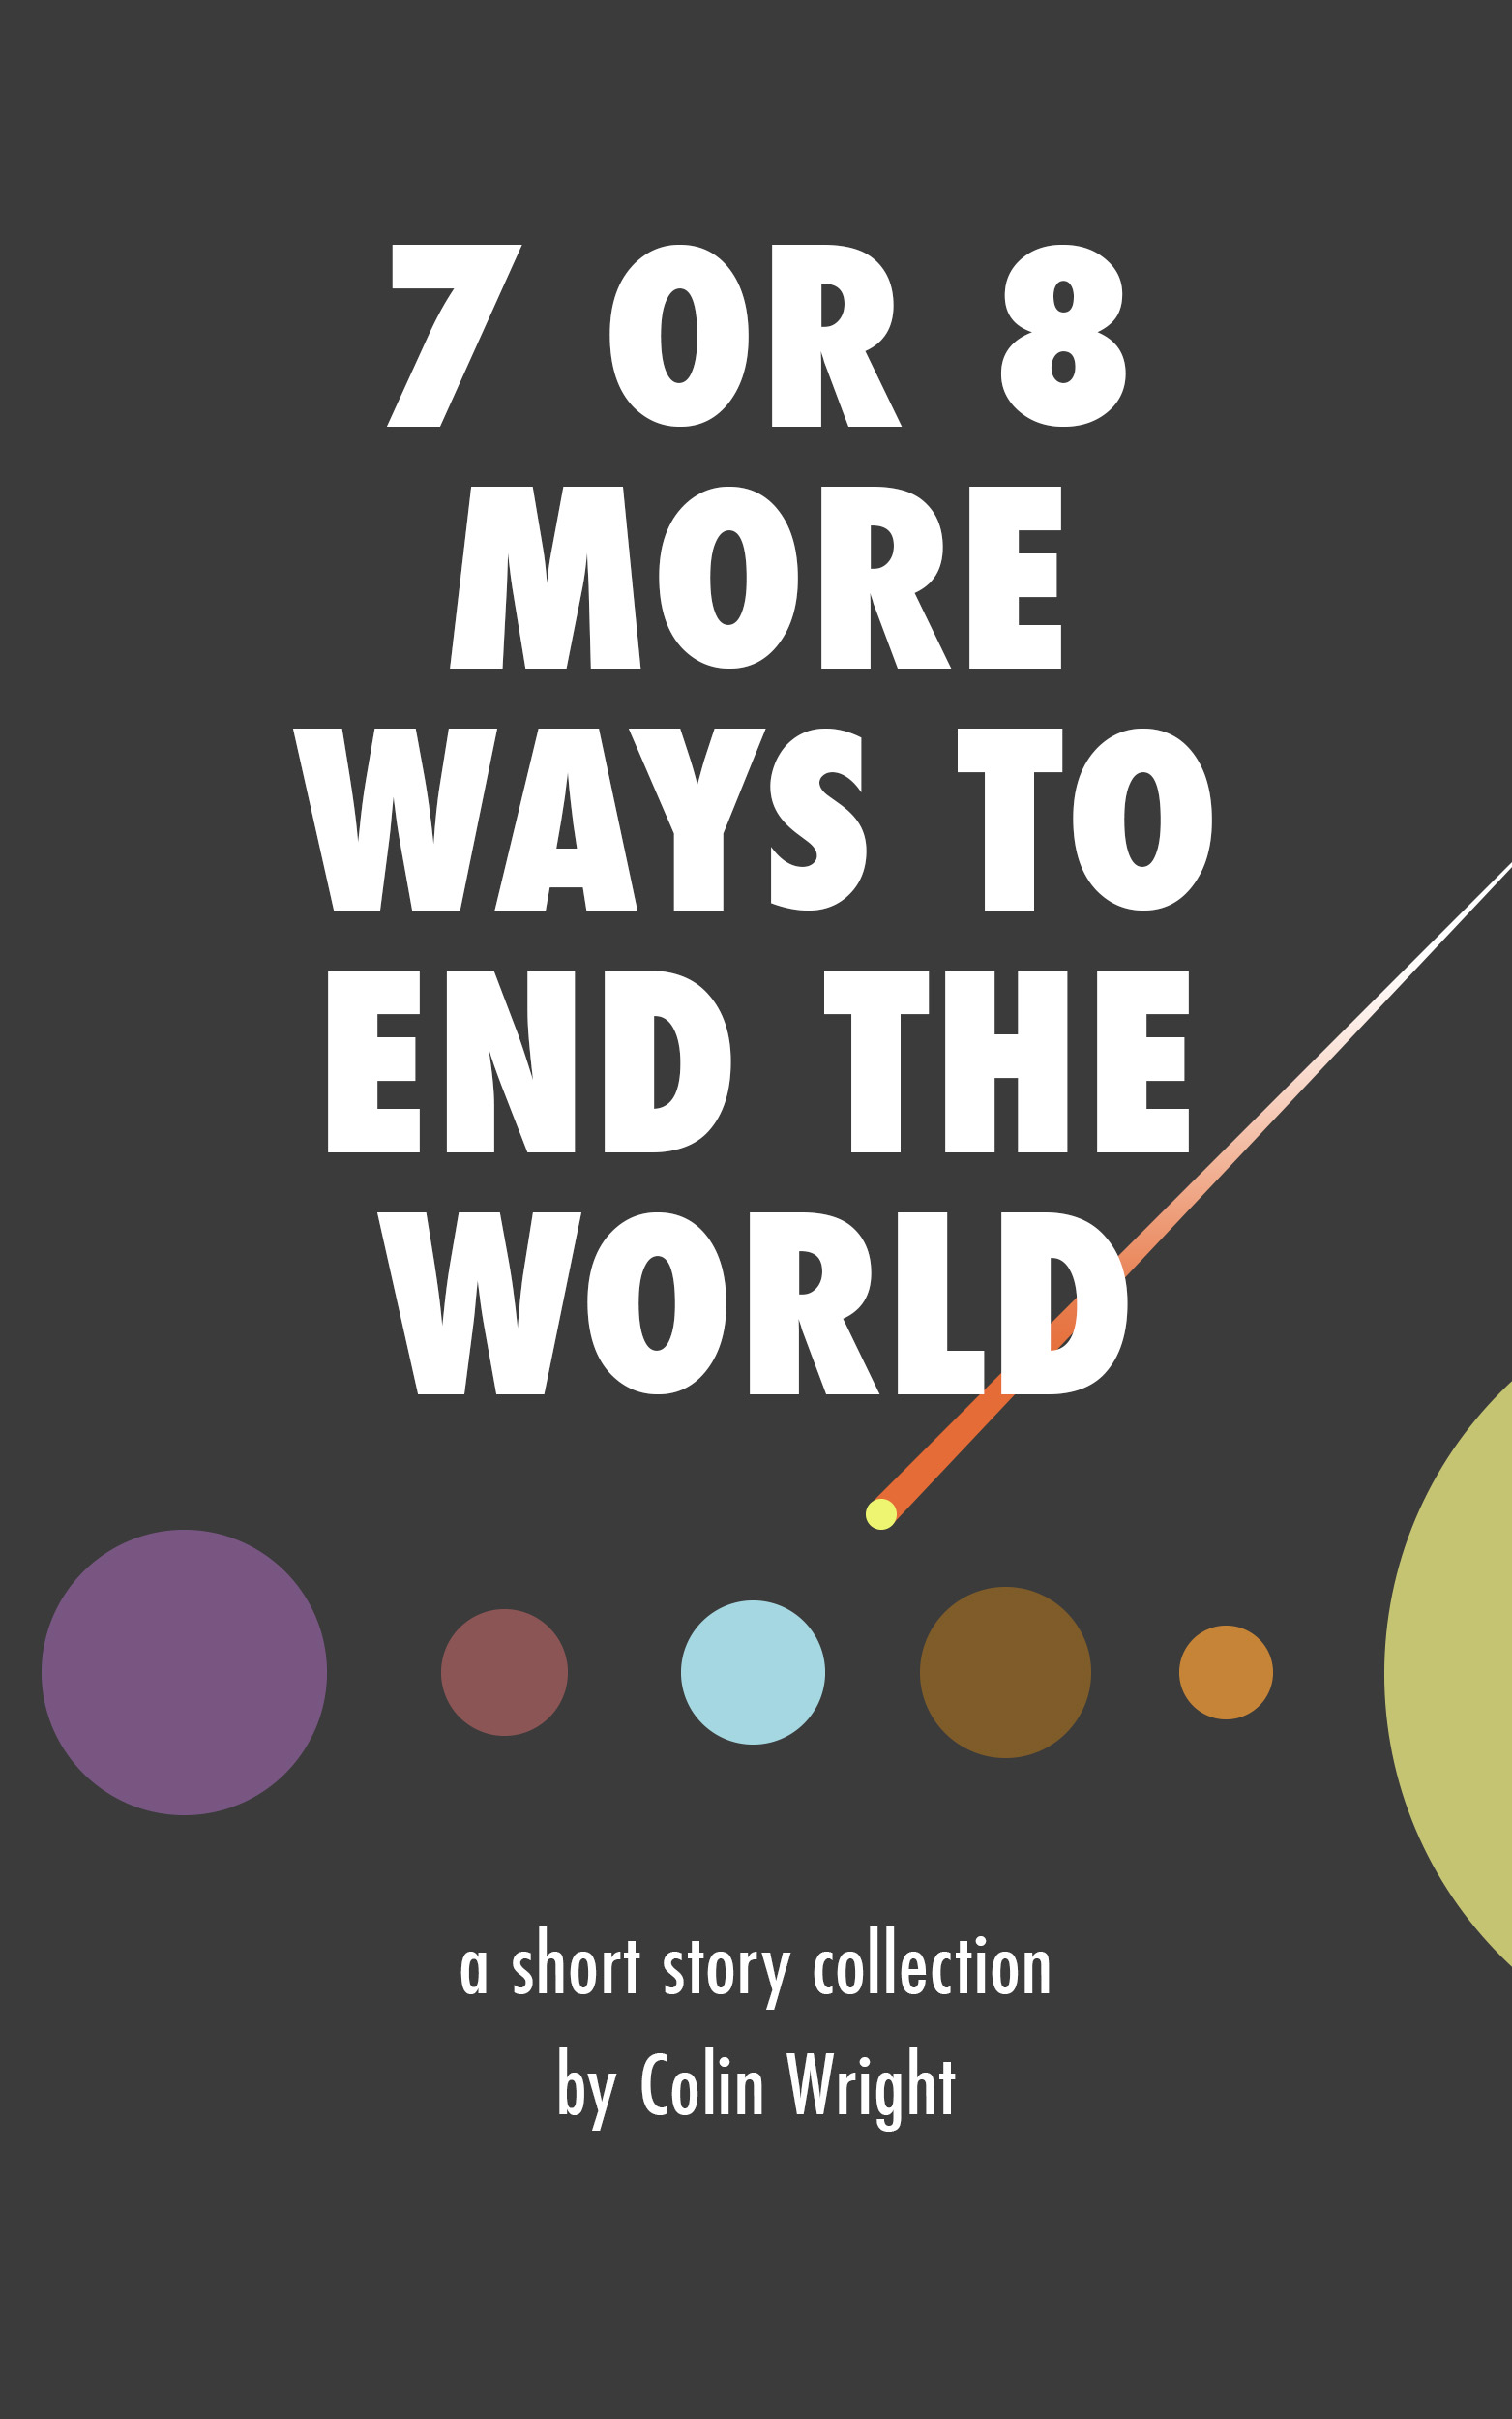 7 or 8 More Ways to End the World